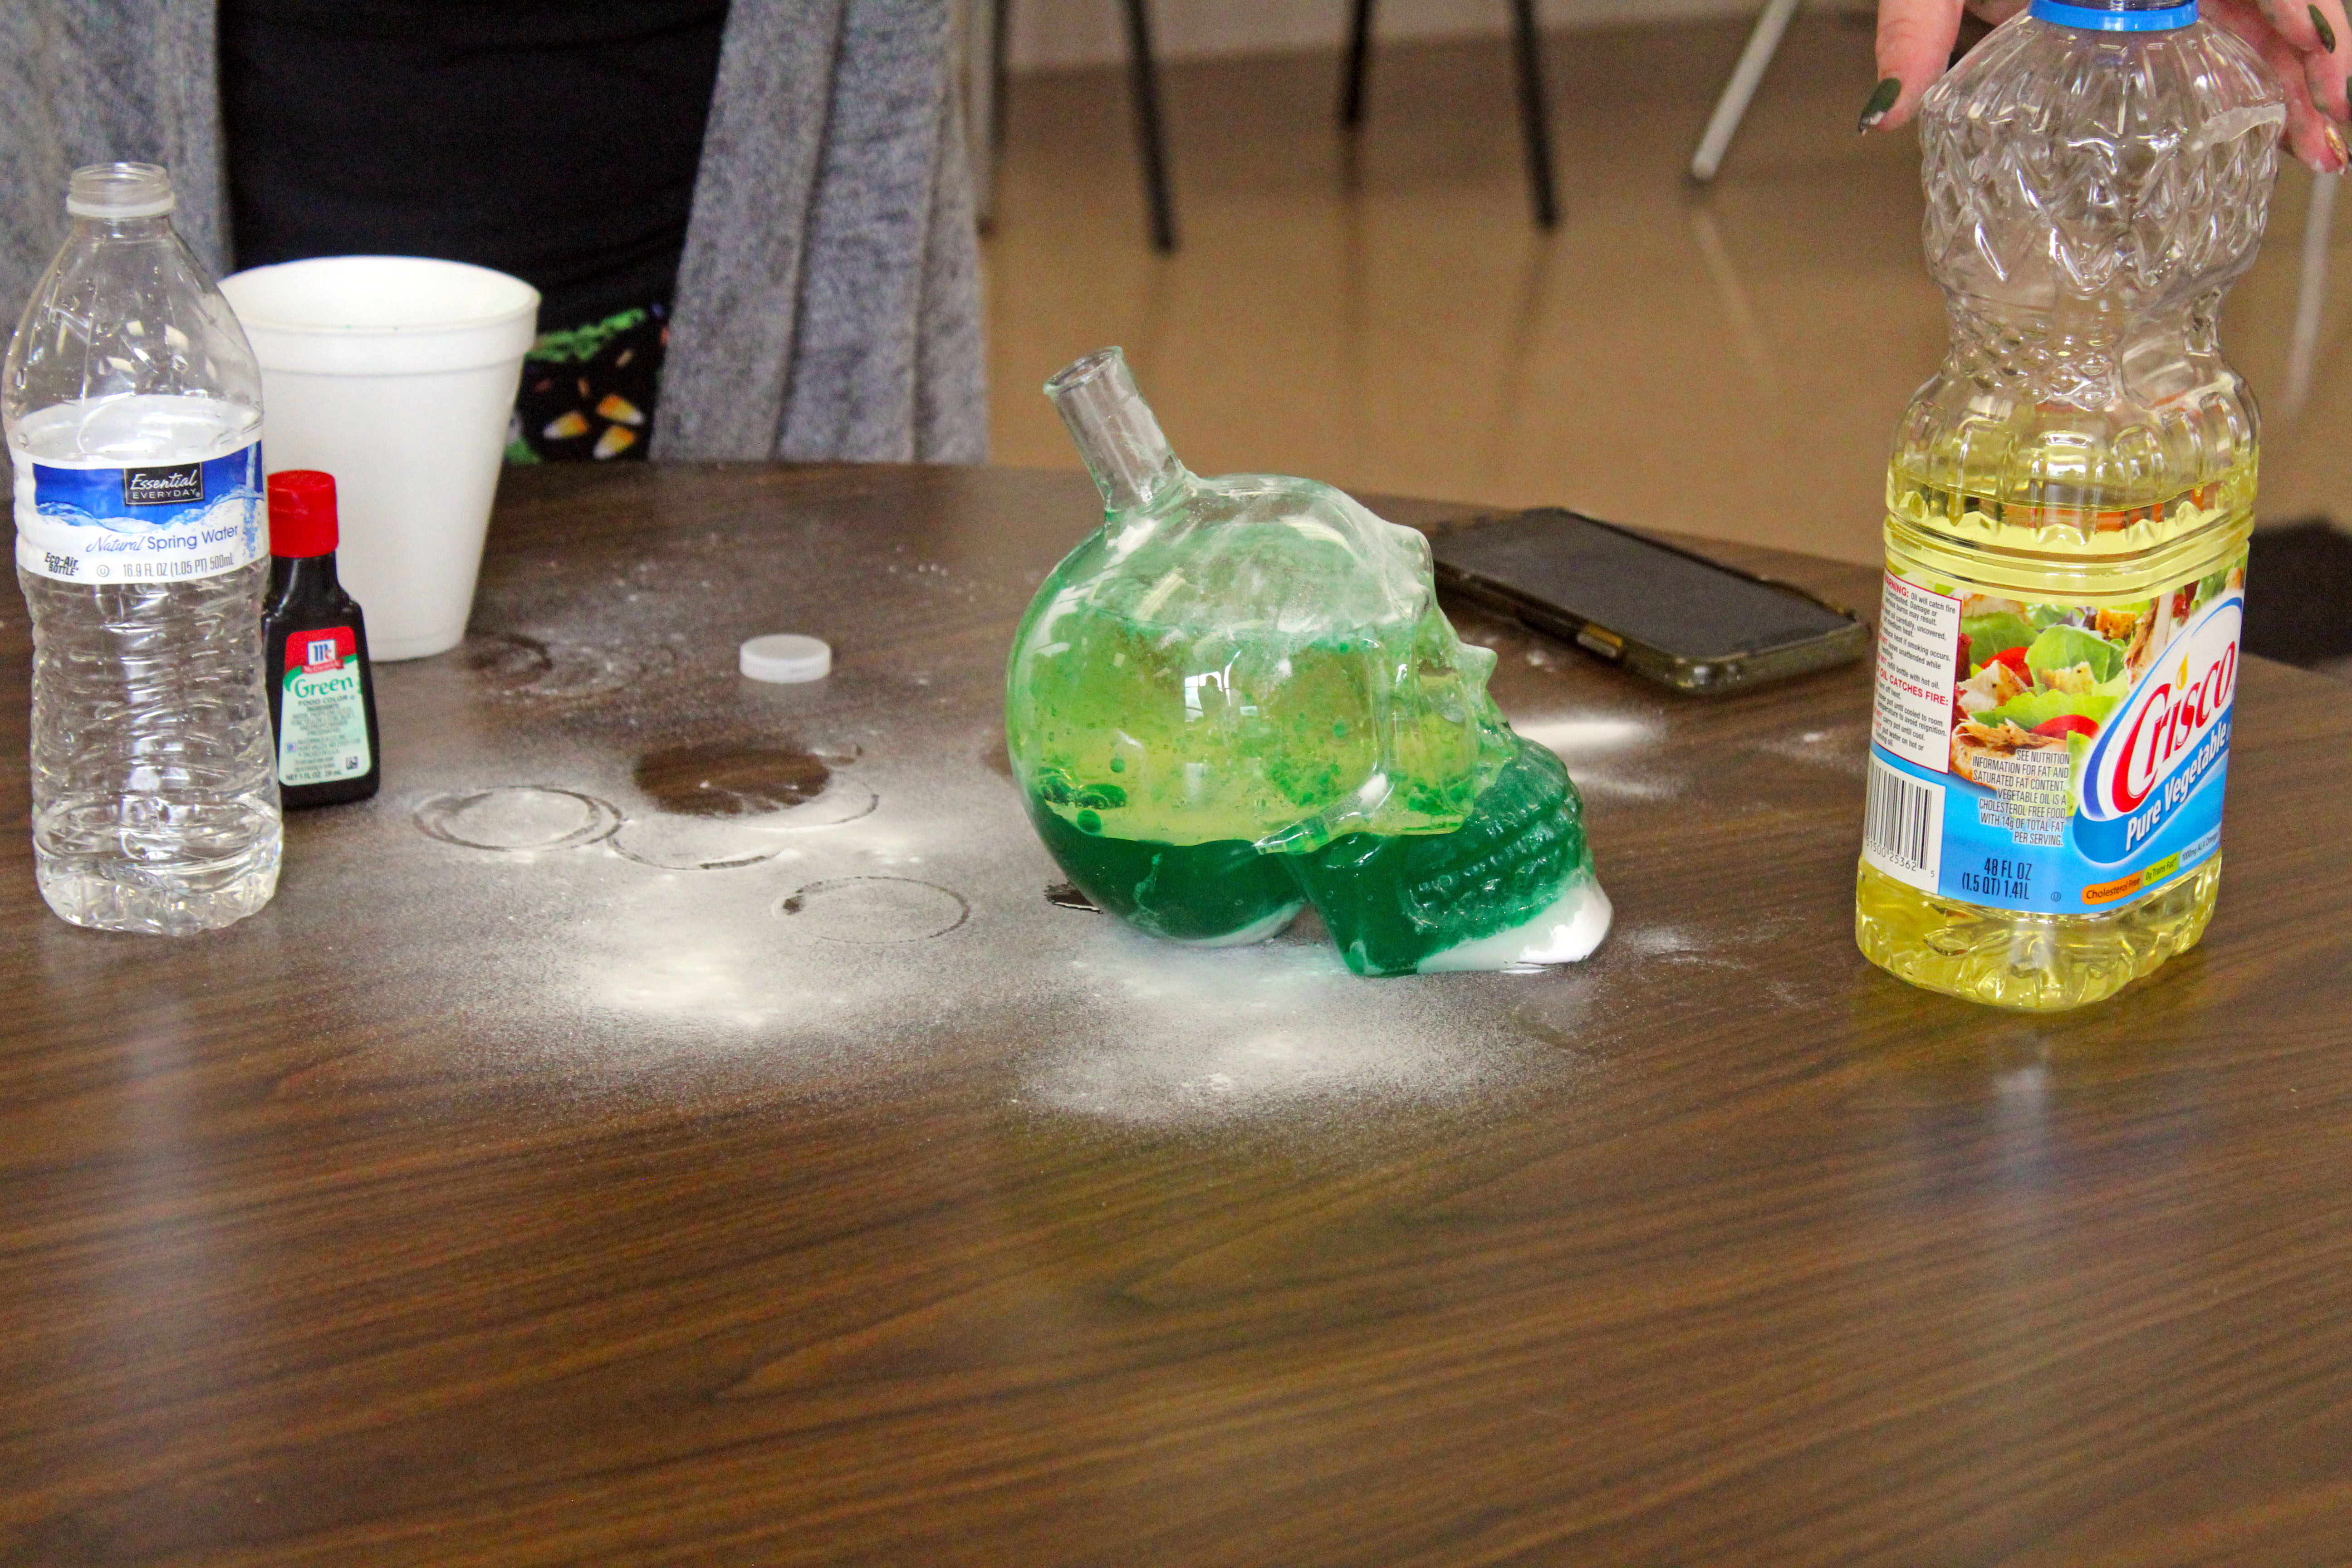 special-education-teacher-instructs-how-to-make-lava-lamp-gallery-5